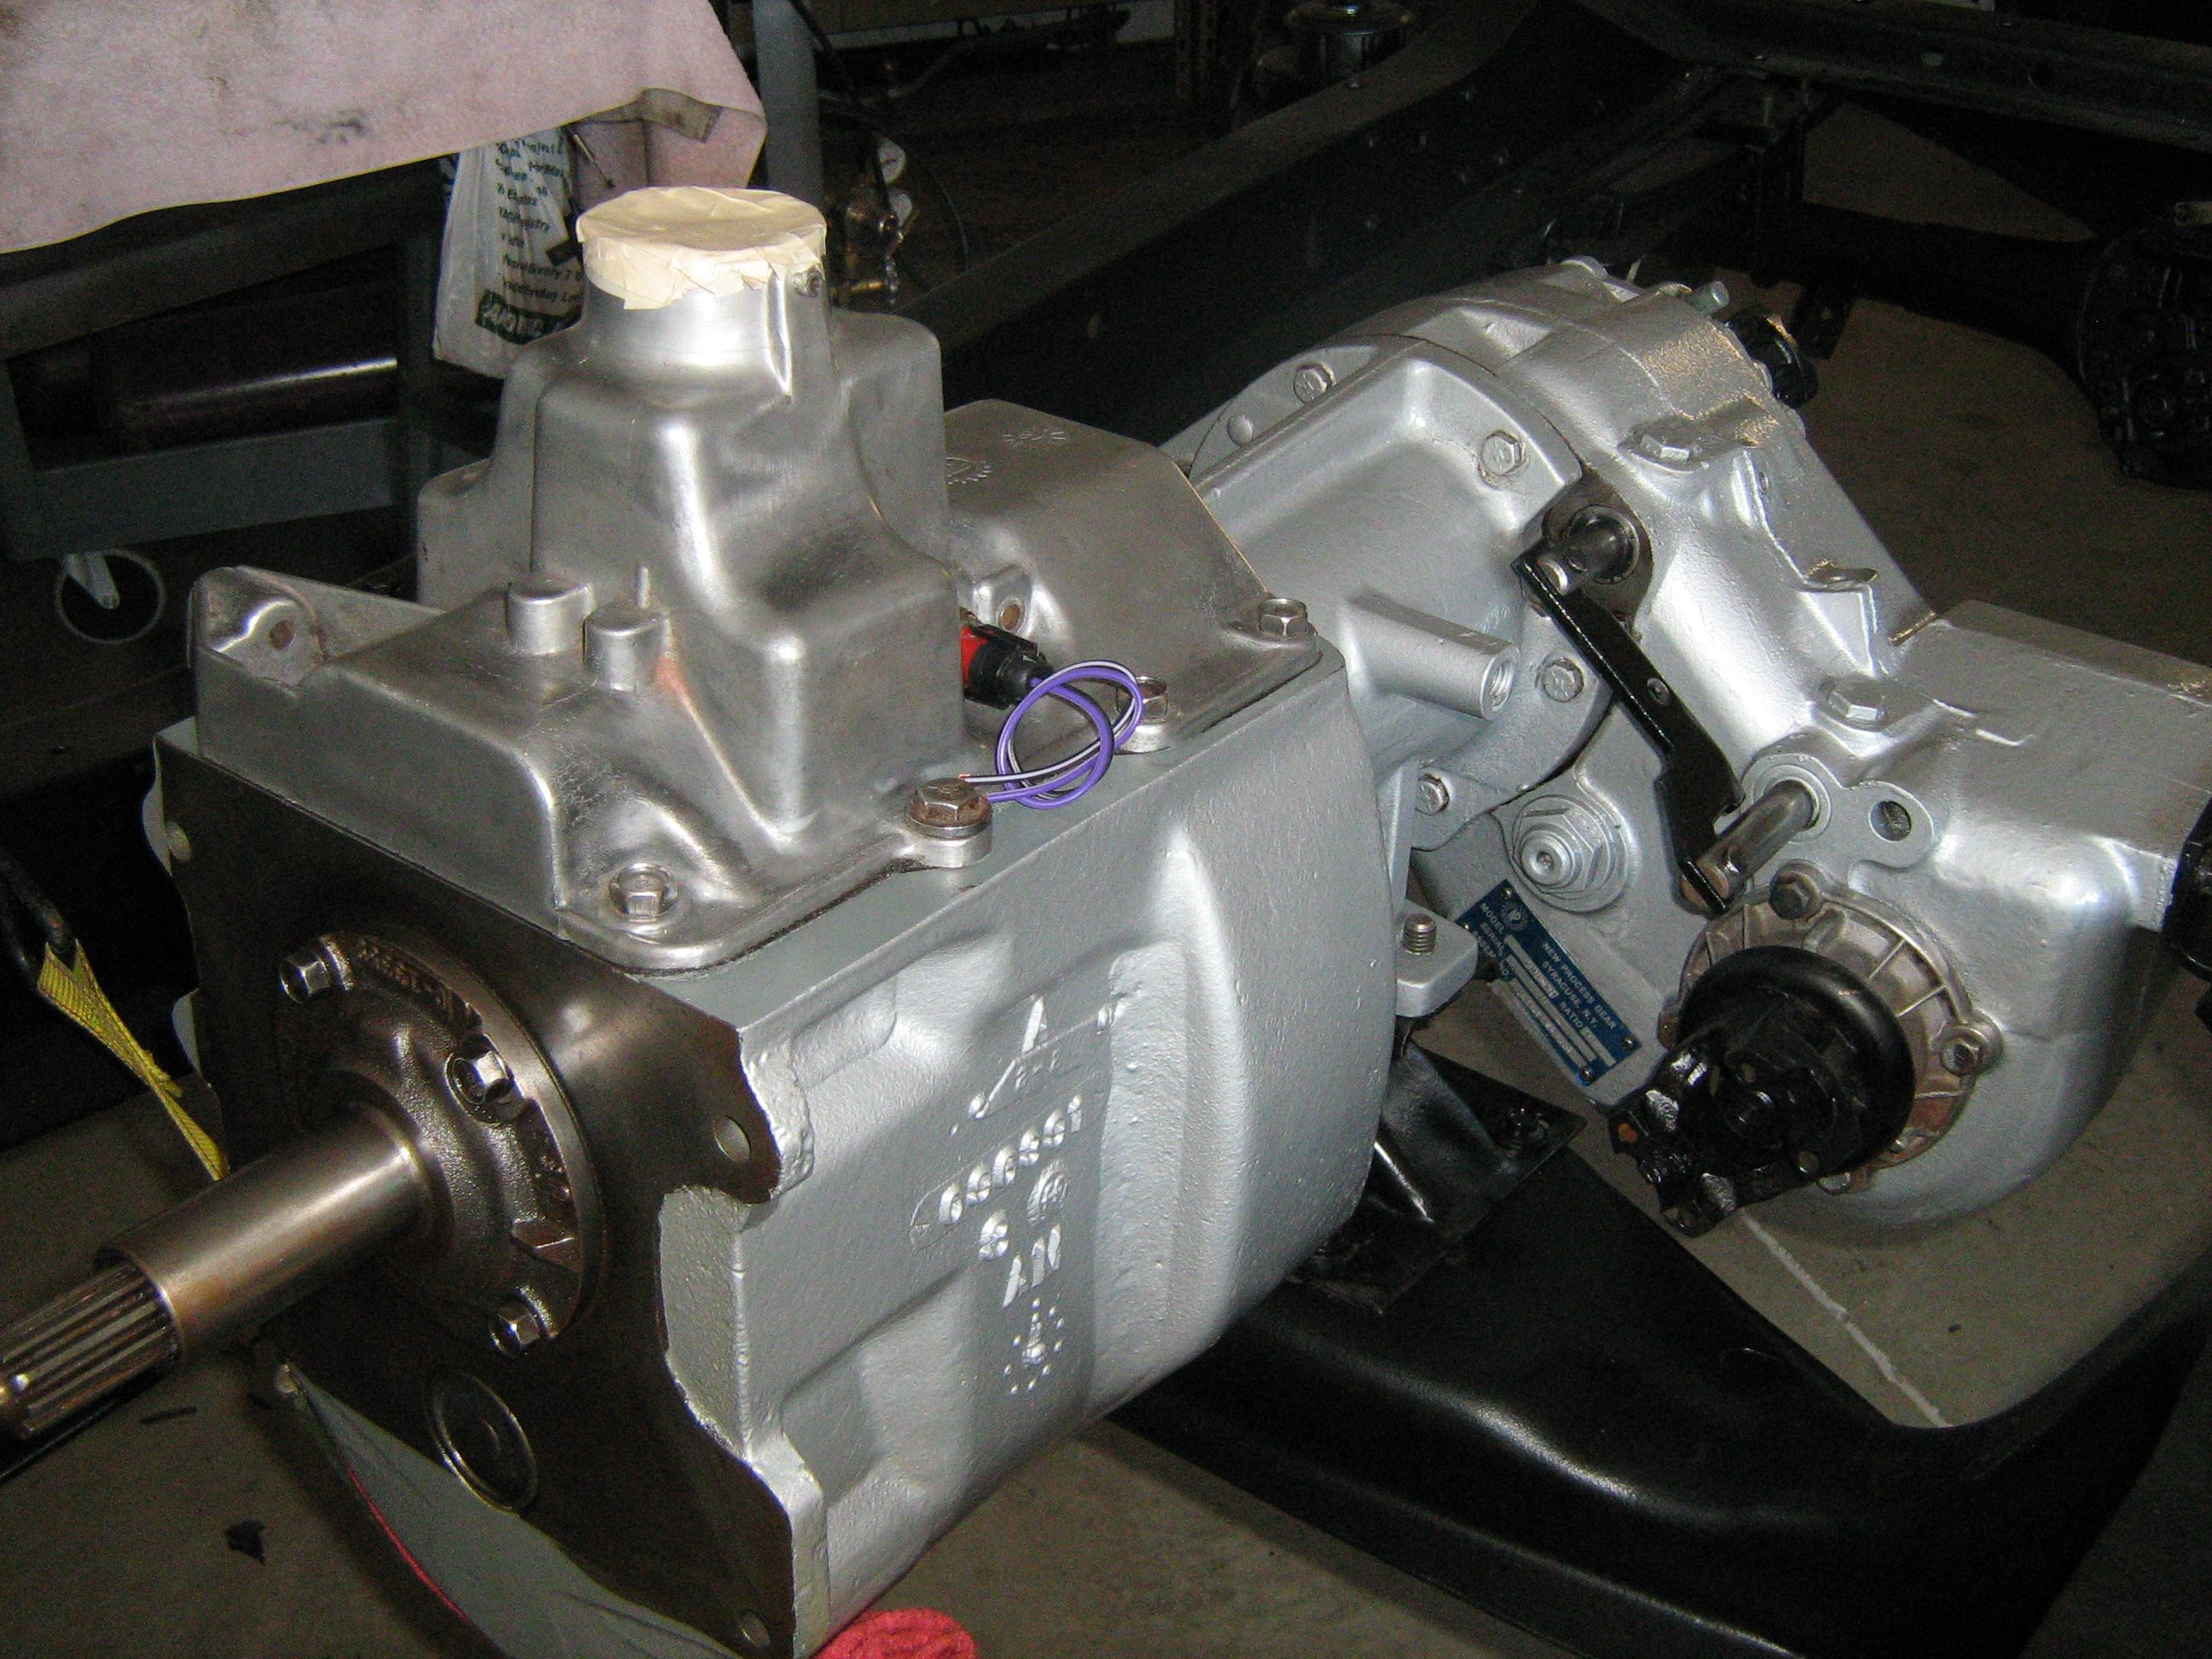 NP 435 transmission with transfer case Ford pickup, Ford